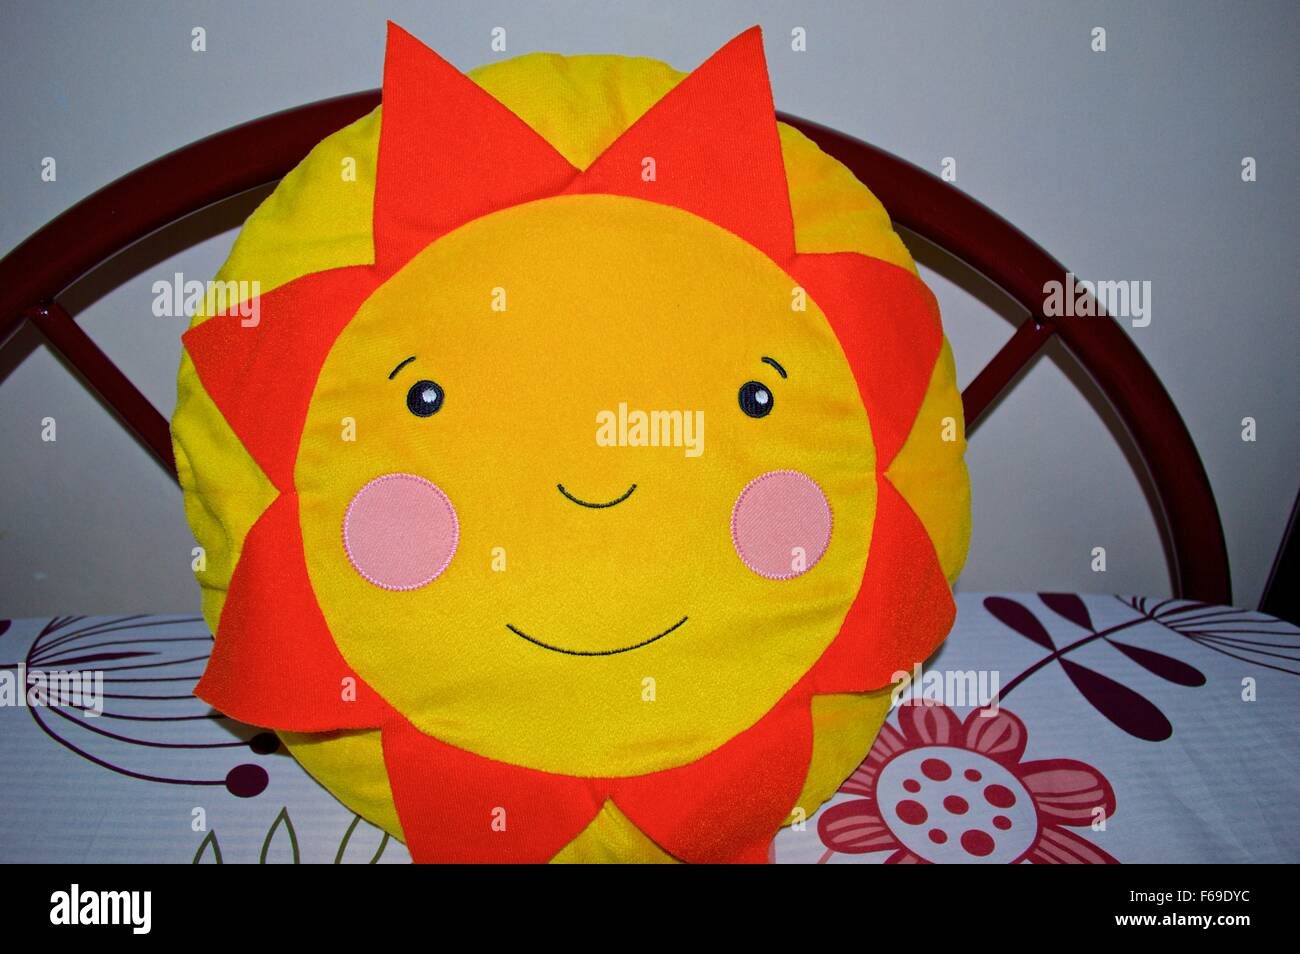 Sunflower pillow with yellow color and smiley - Stock Image